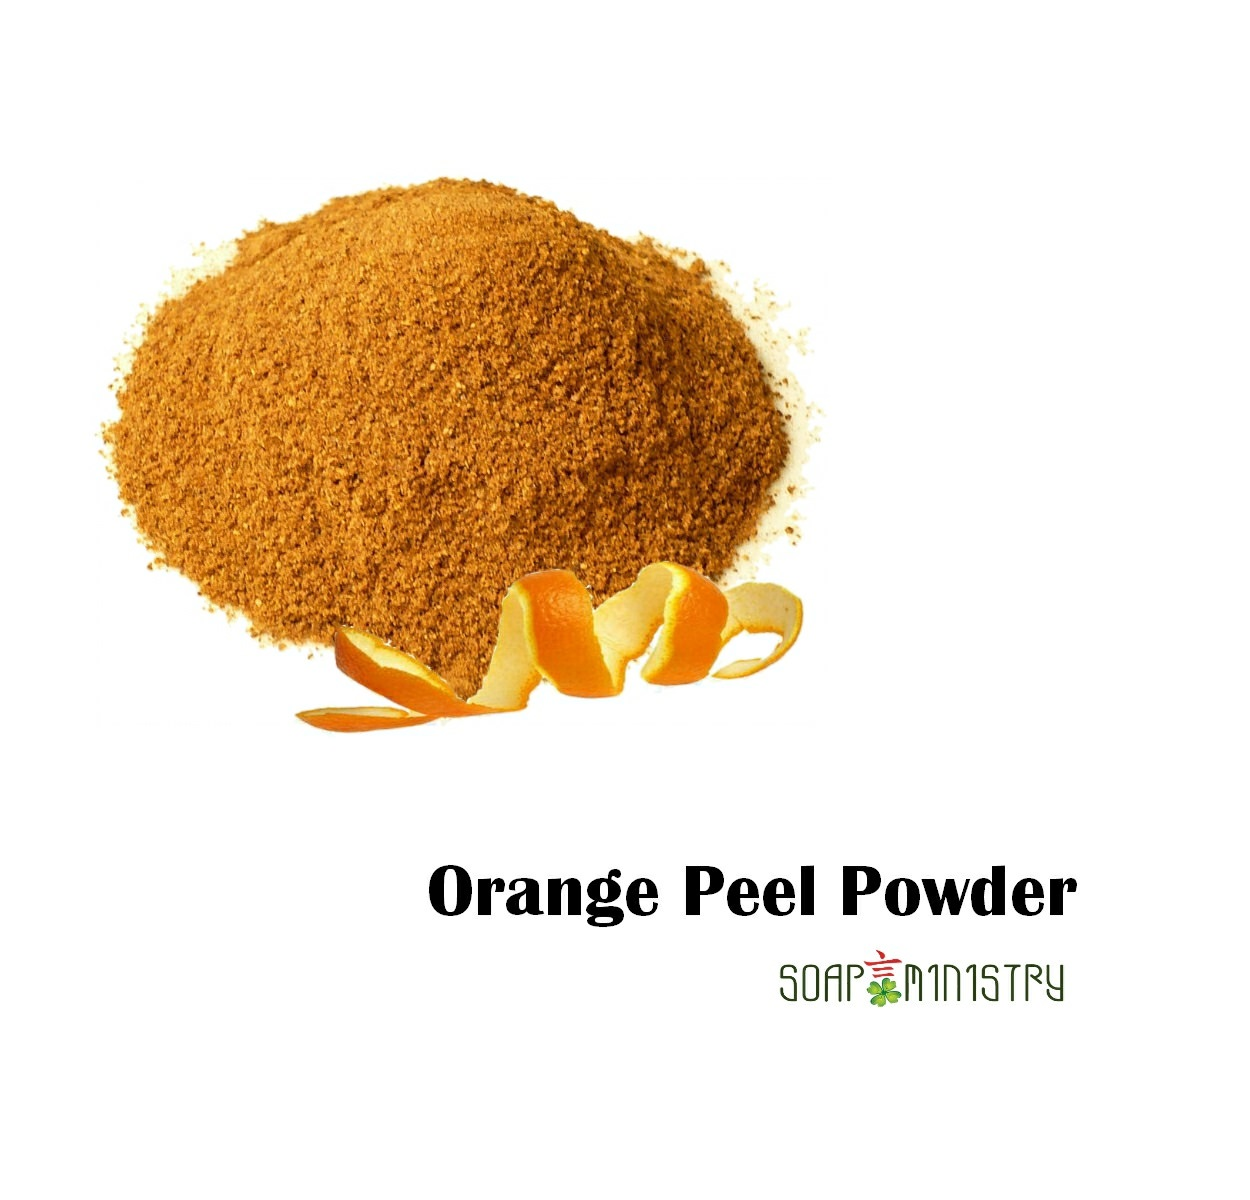 Orange Peel Powder 250g